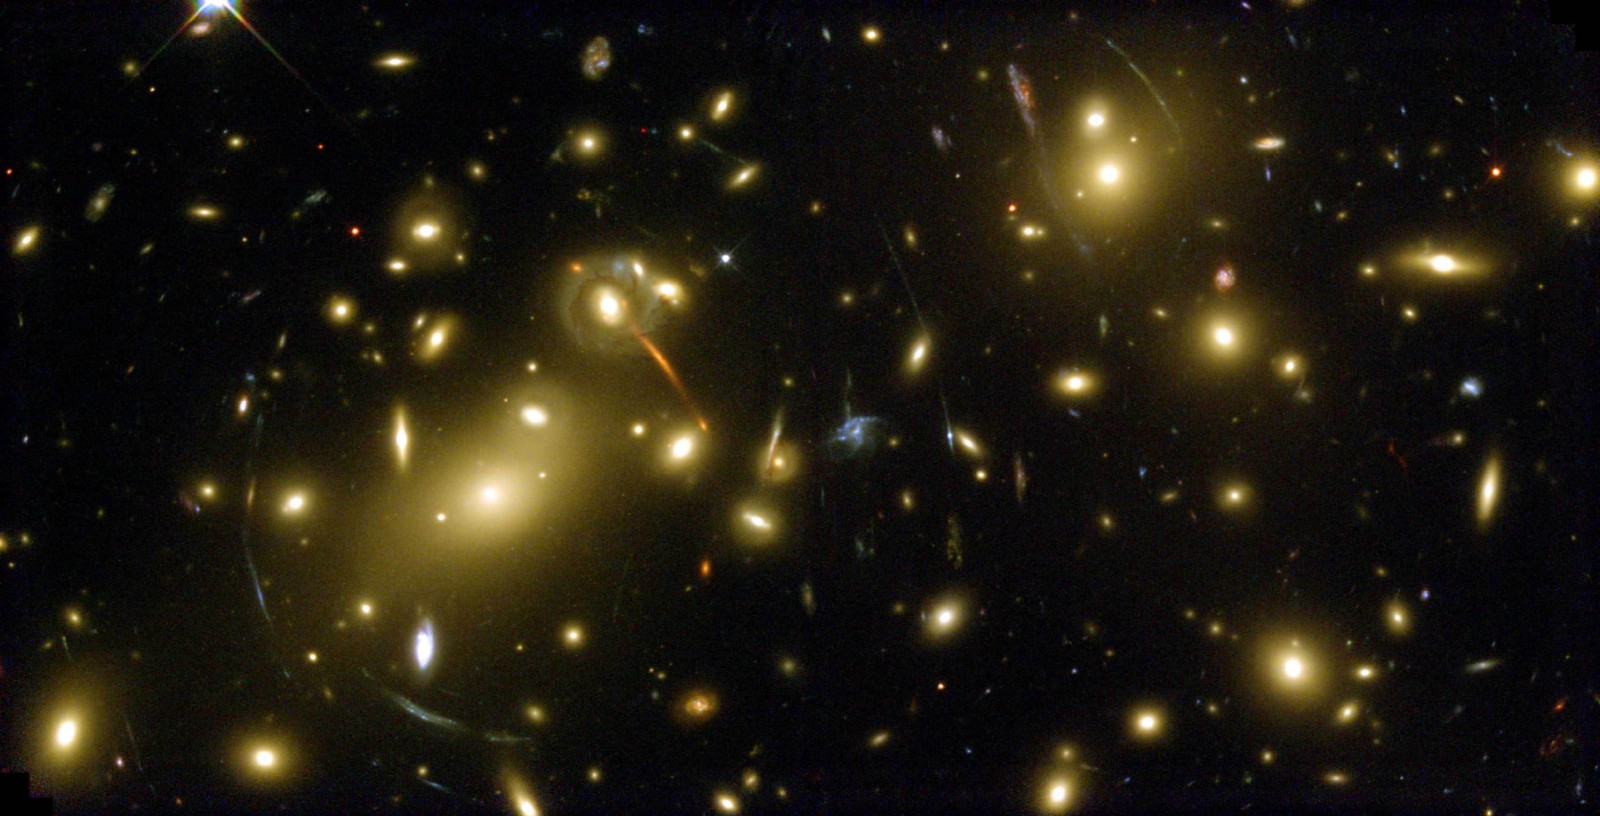 10 Facts Everyone Should Know About Dark Matter